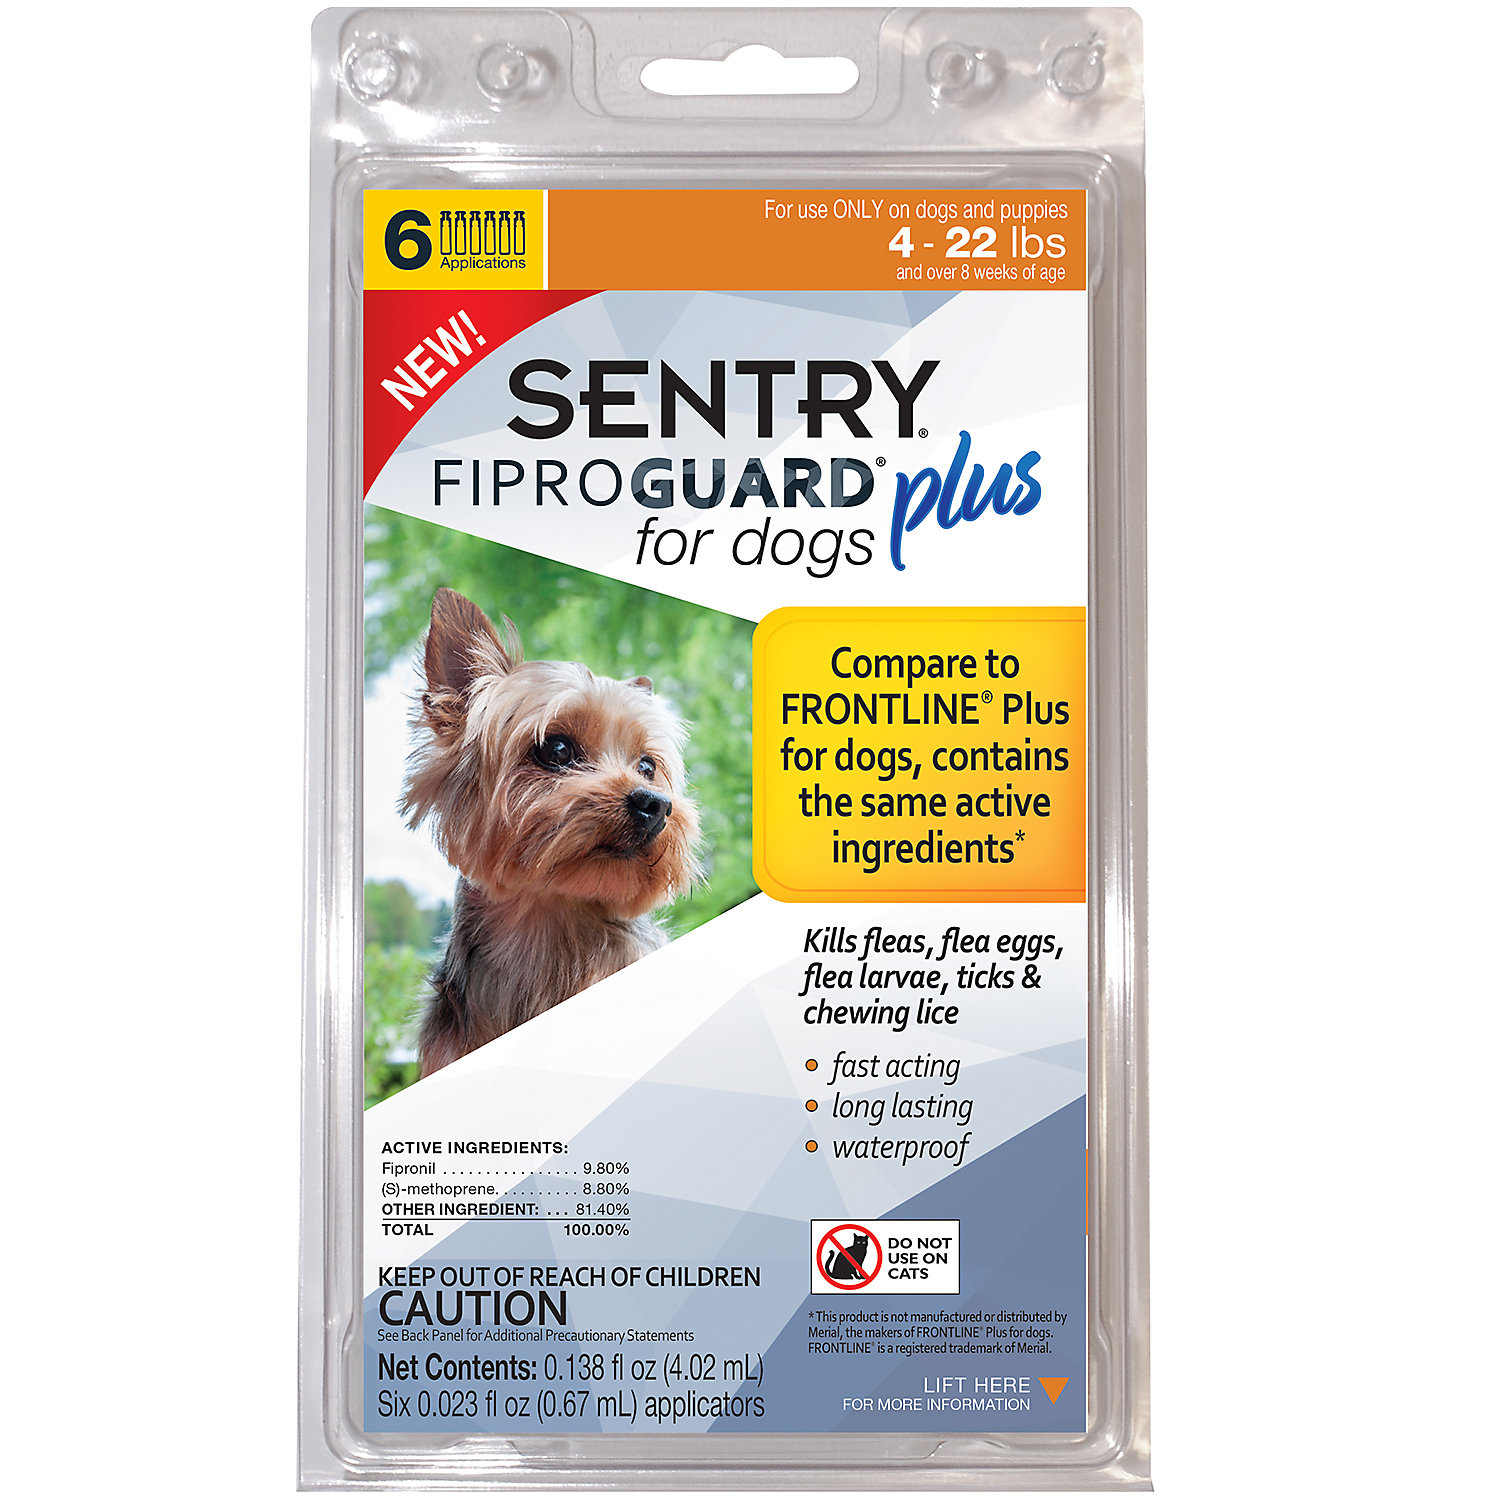 Sentry FIPROGUARD PLUS for Dogs  Puppies 422 lbs. Topical Flea  Tick Treatment 6 Month Supply 6 CT